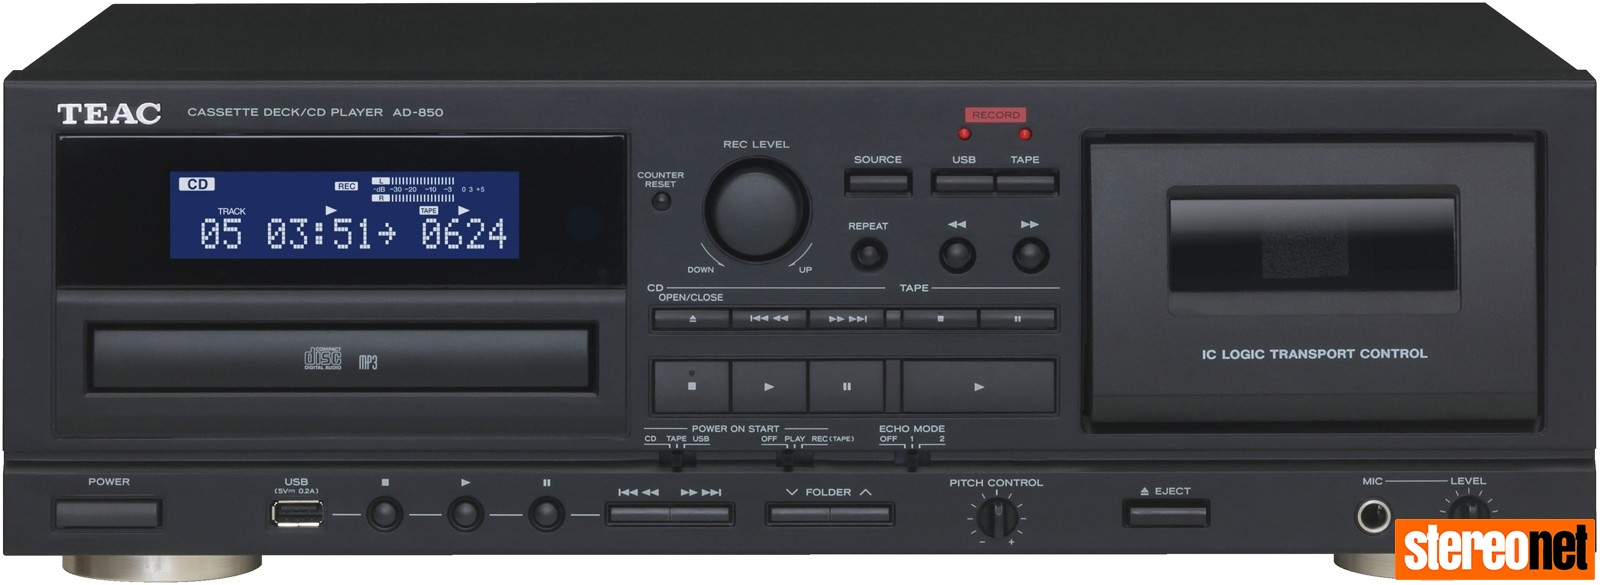 TEAC AD-850 Cassette Player